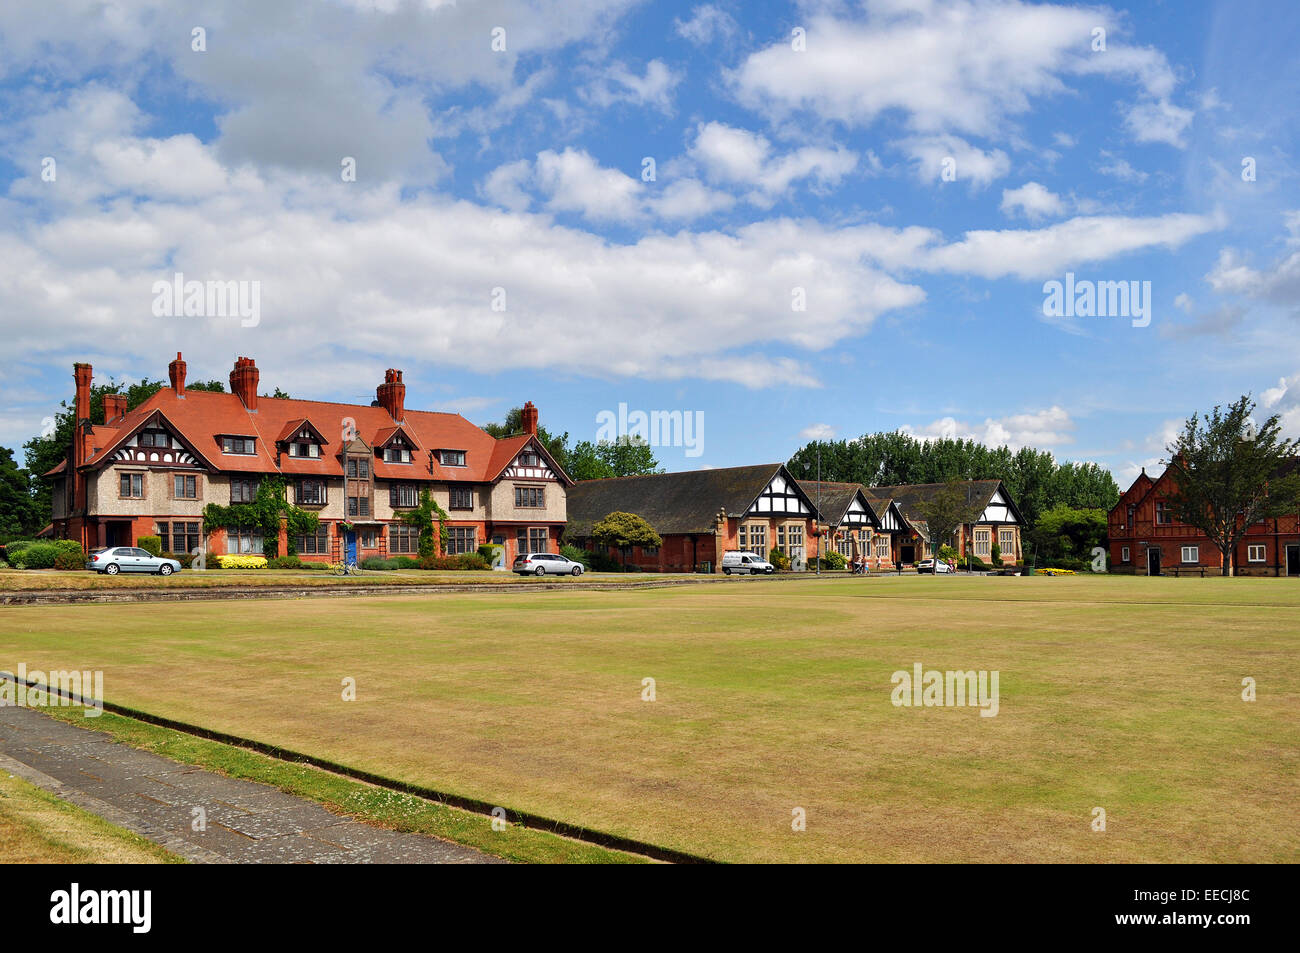 The bowling green in Port Sunlight, Merseyside, uk - Stock Image